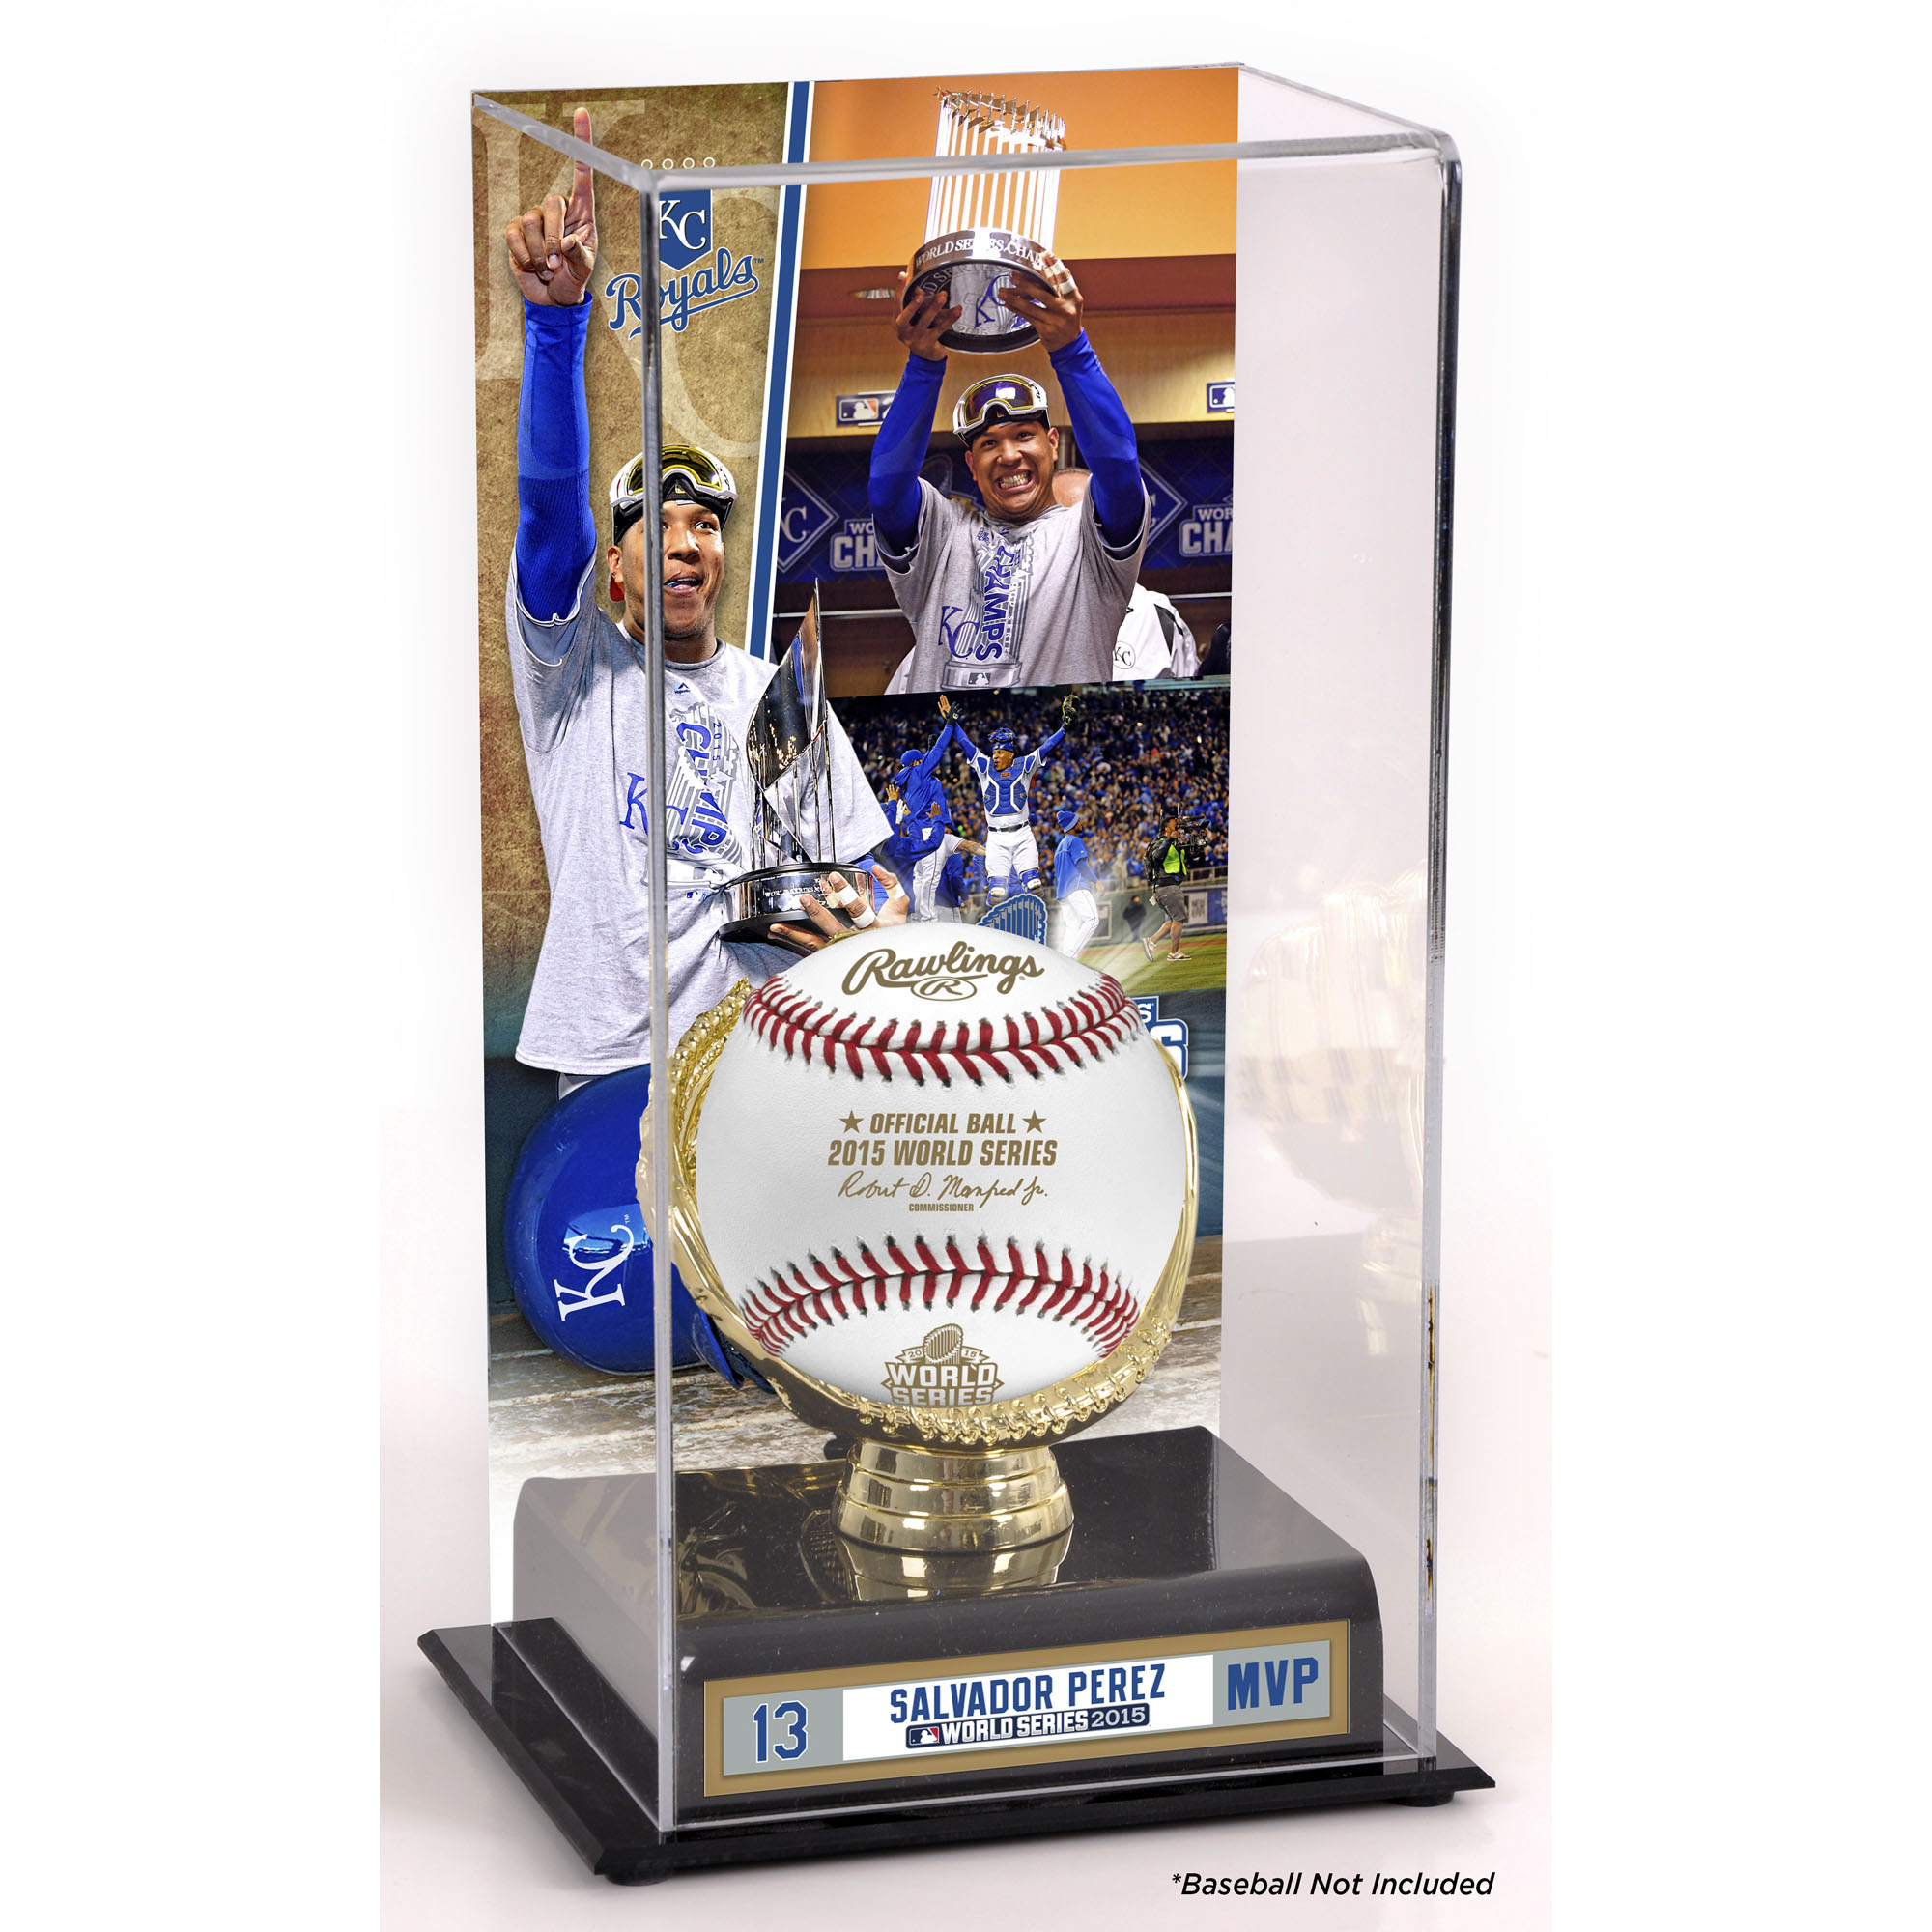 Salvador Perez Kansas City Royals Fanatics Authentic 2015 MLB World Series Champions World Series MVP Gold Glove Display Case with Image - No Size